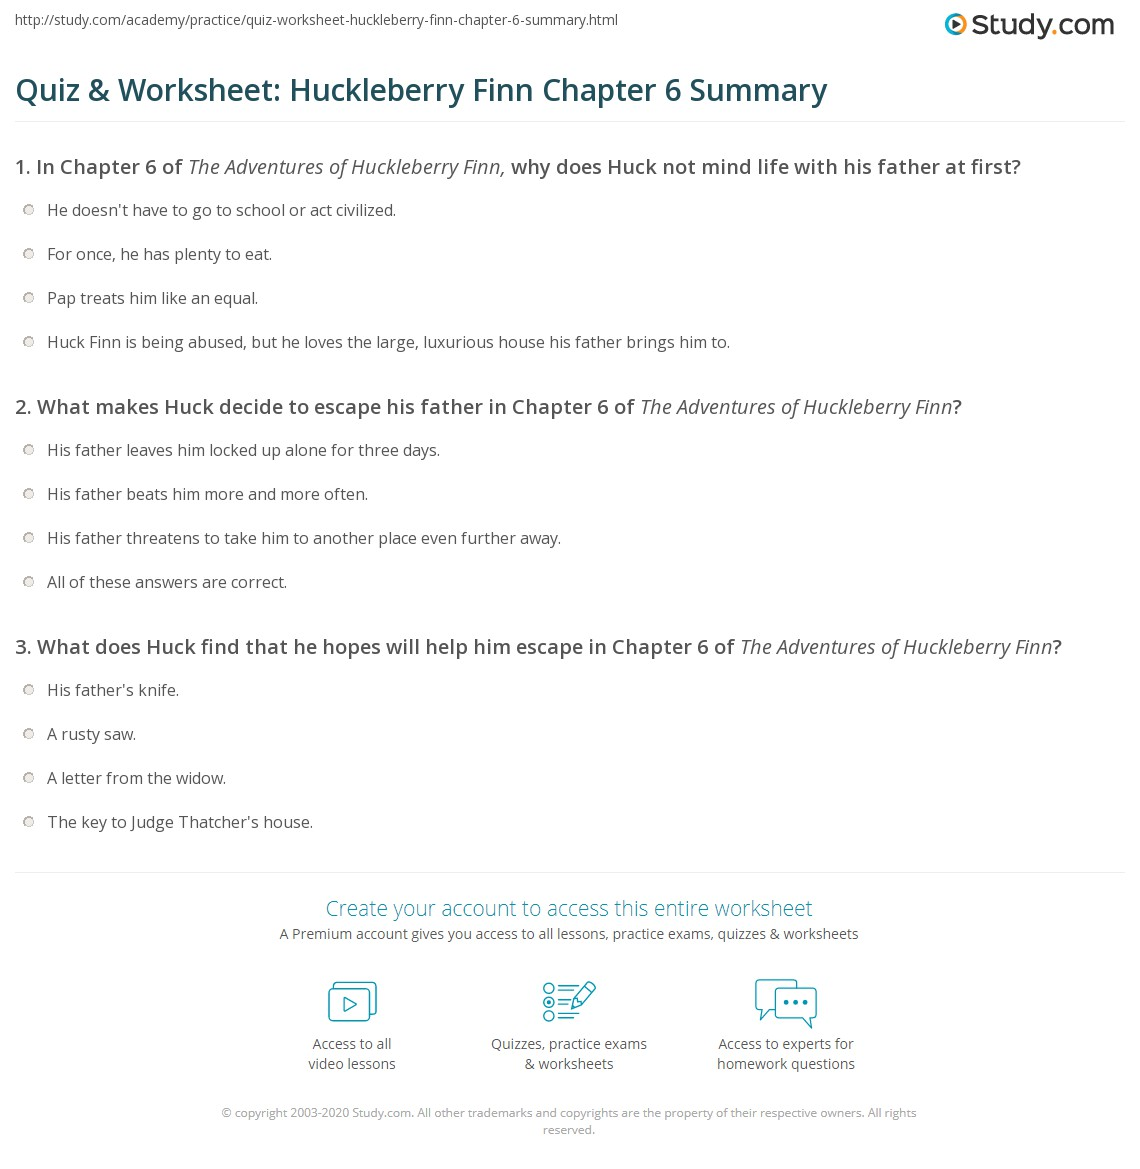 tips for writing the critical essays on huckleberry finn the critical essays on huckleberry finn get access to this the adventures of huckleberry finn study guide in adventures of huckleberry finn and